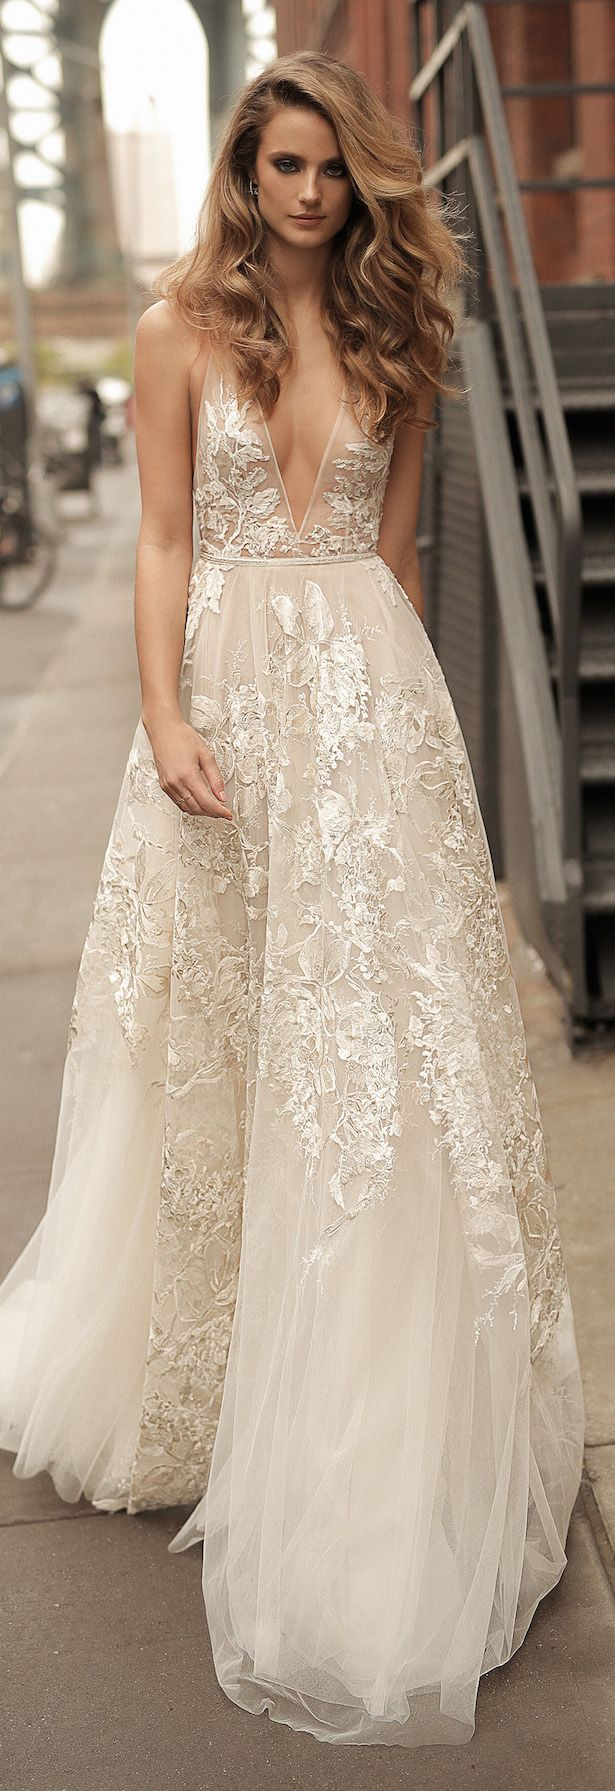 Berta wedding dress collection spring wedding pinterest